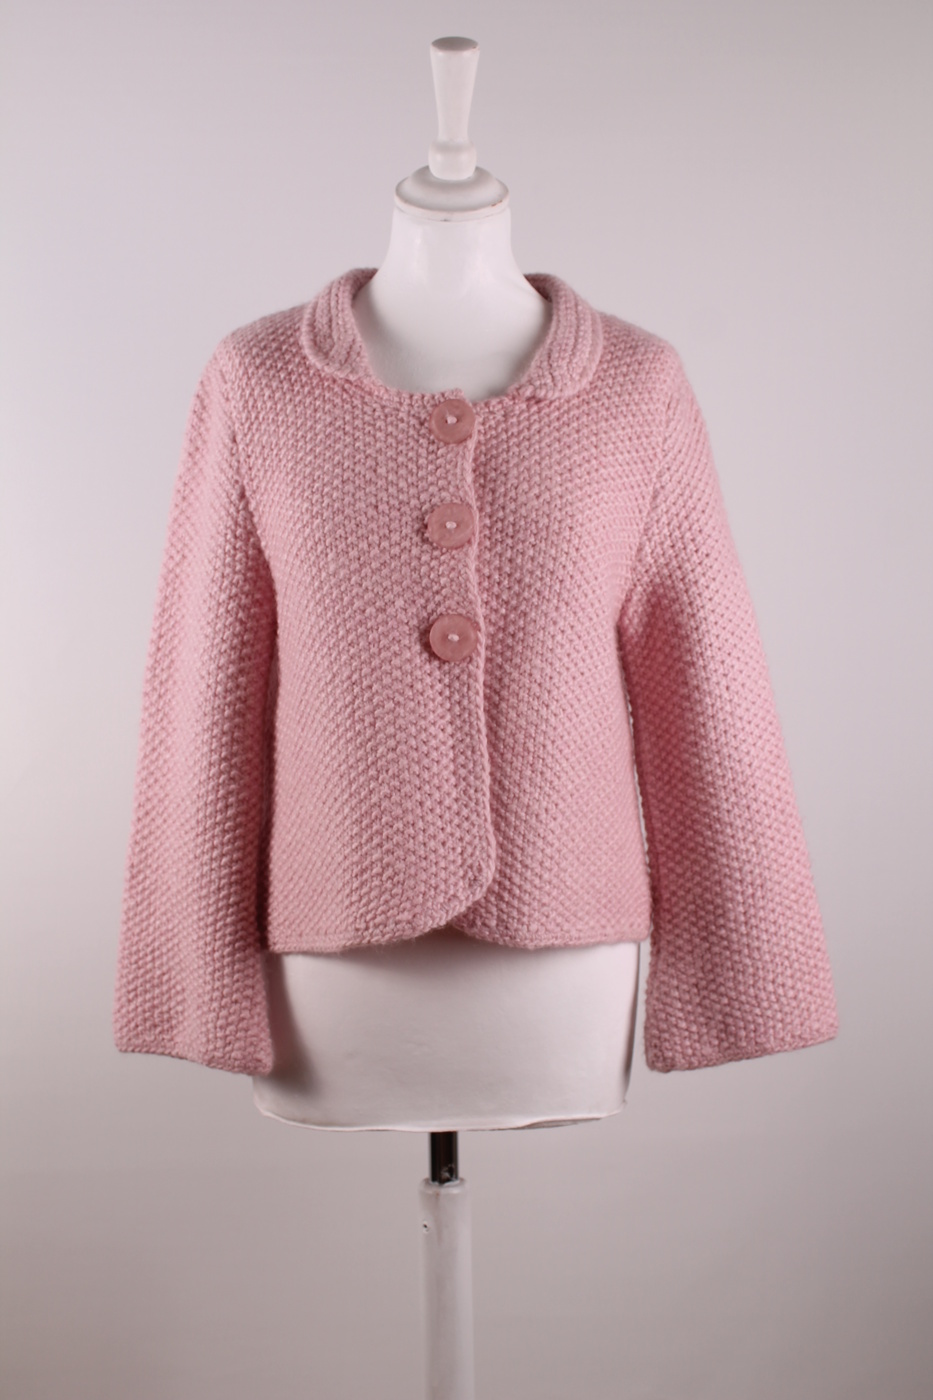 4.Melly-pink wool